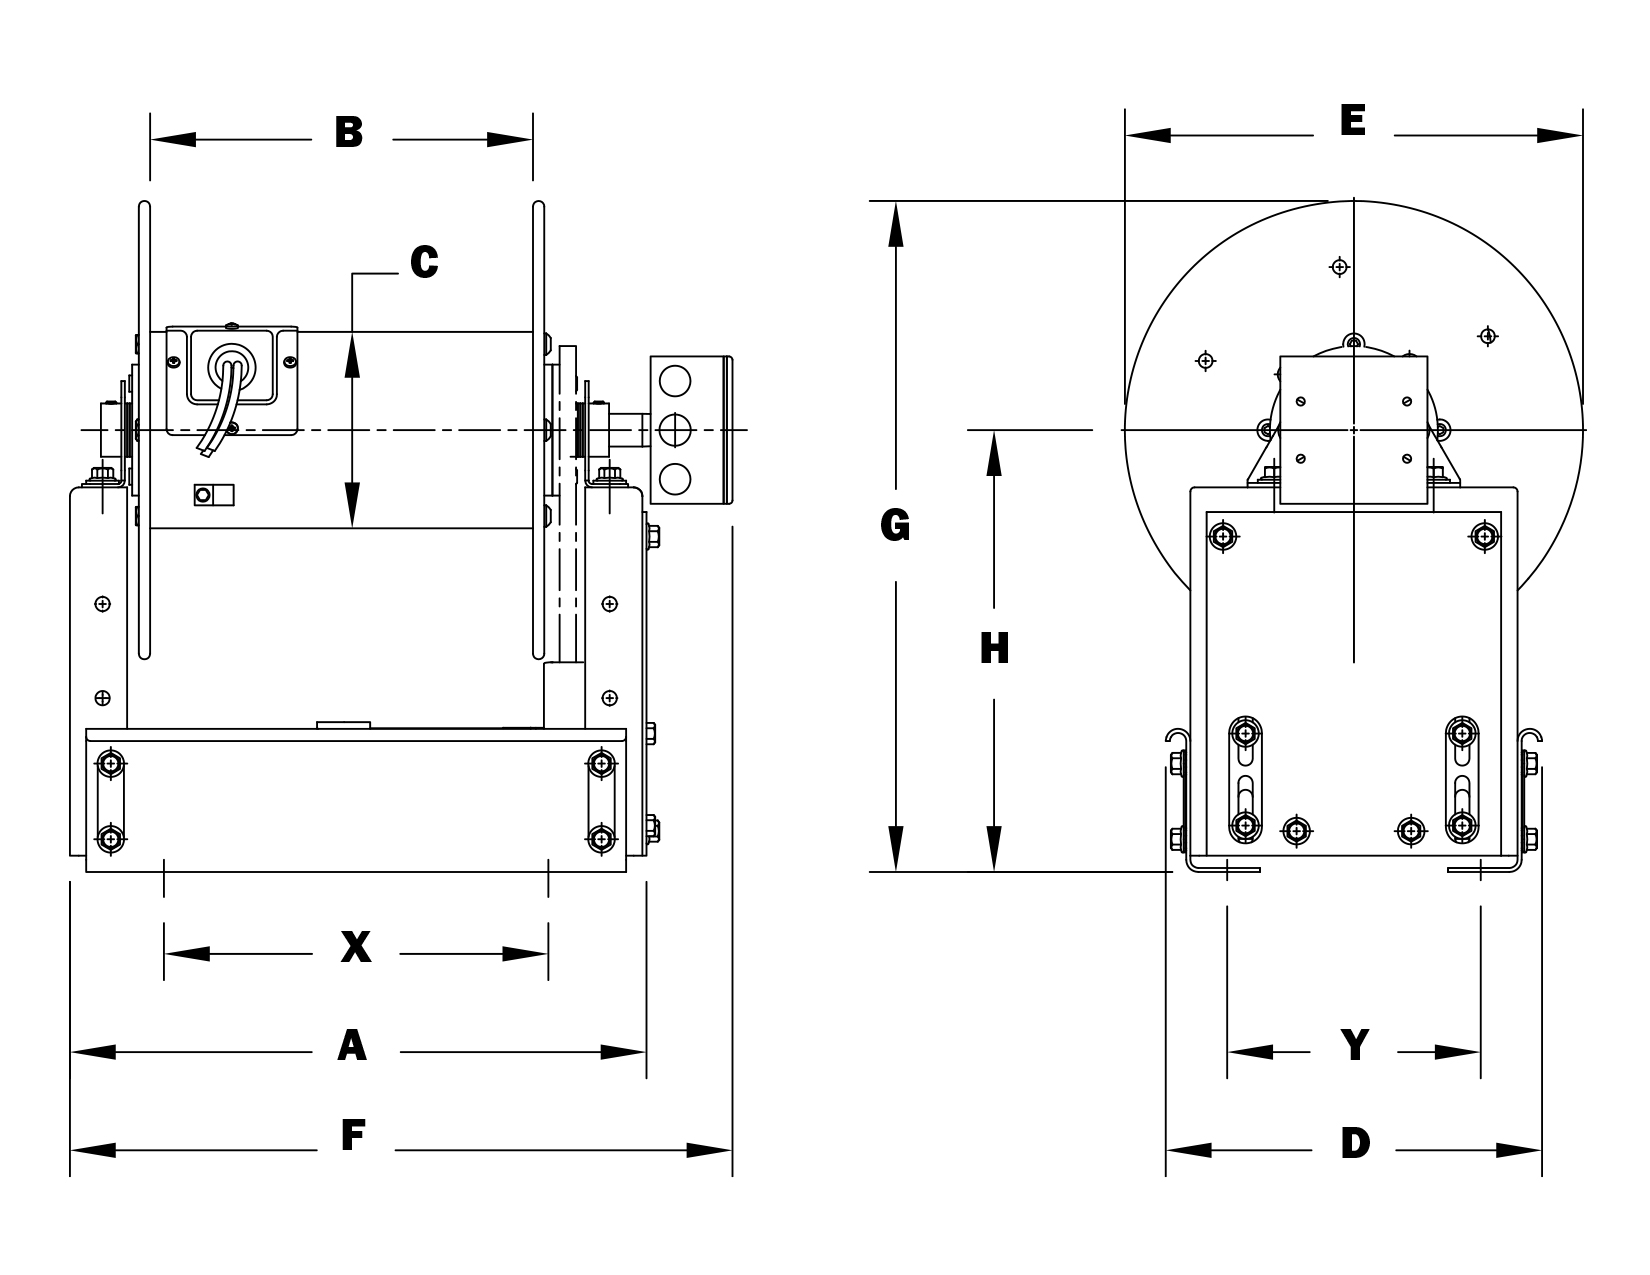 ESFCR1600 Schematic_1492438959 hannay reels wiring diagram wiring diagrams hannay reel wiring diagram at panicattacktreatment.co